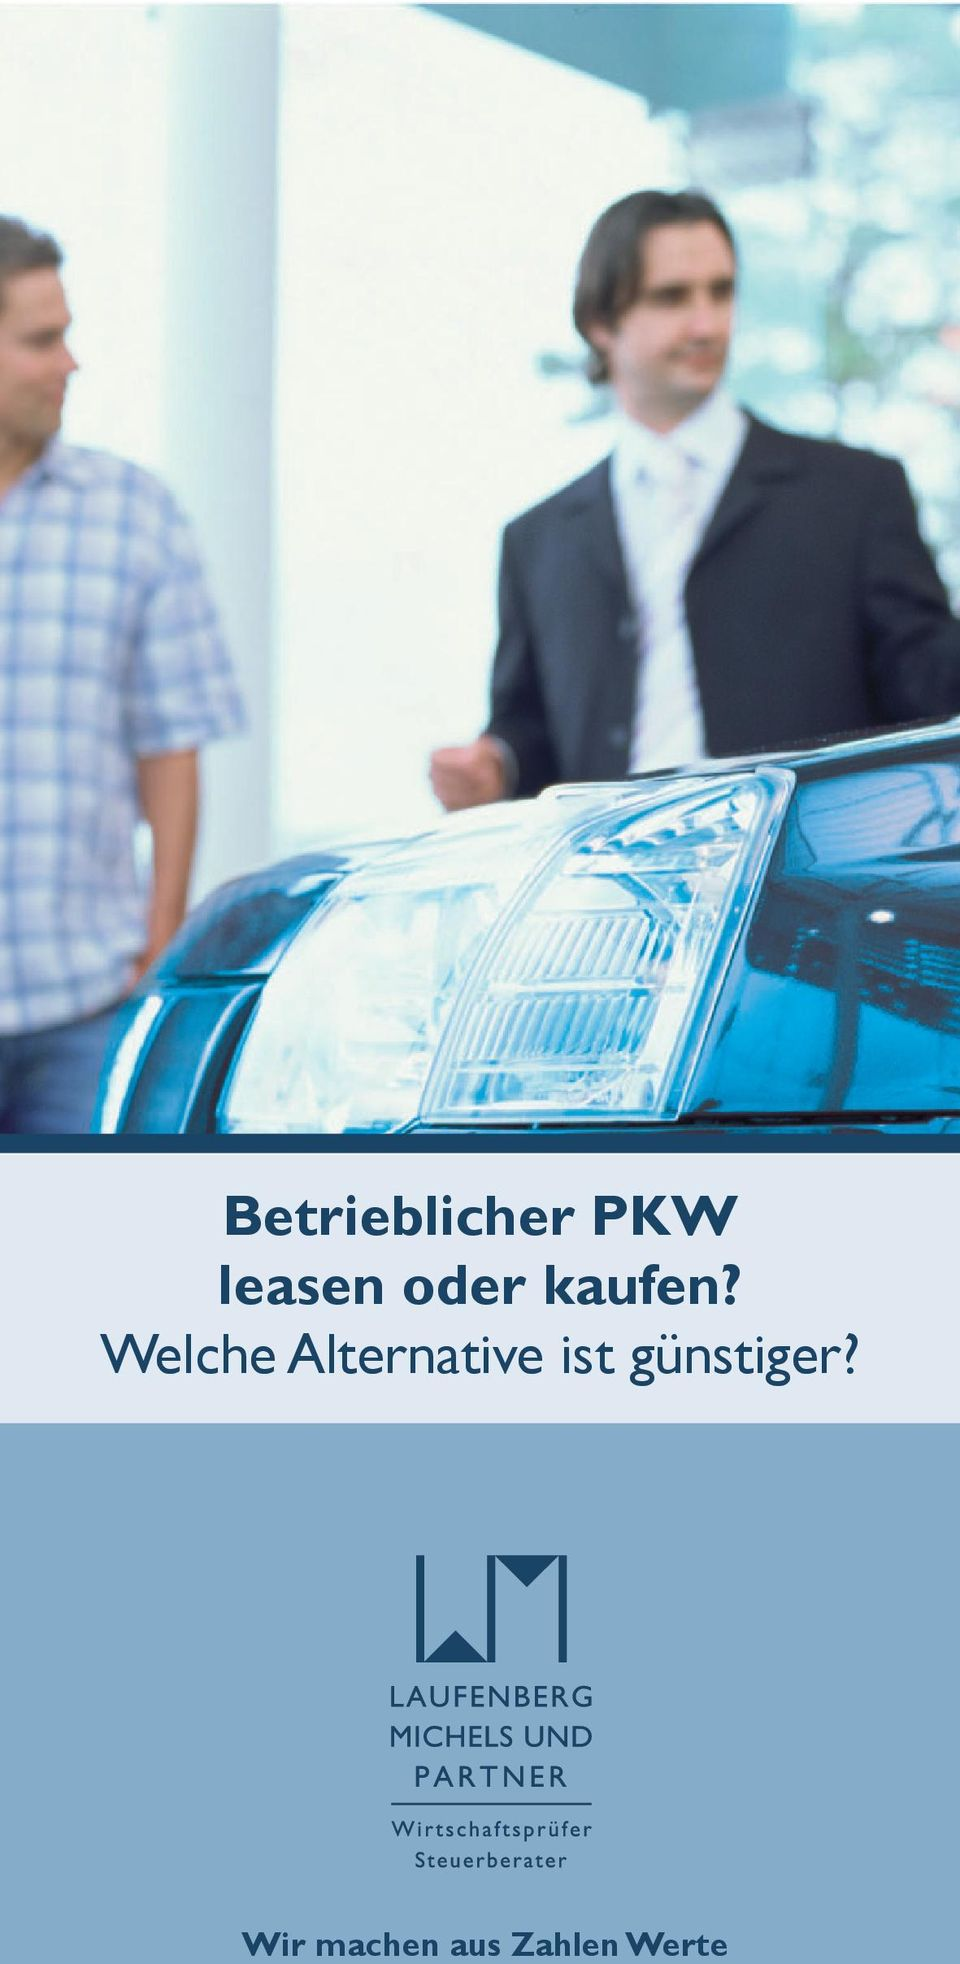 Welche Alternative ist